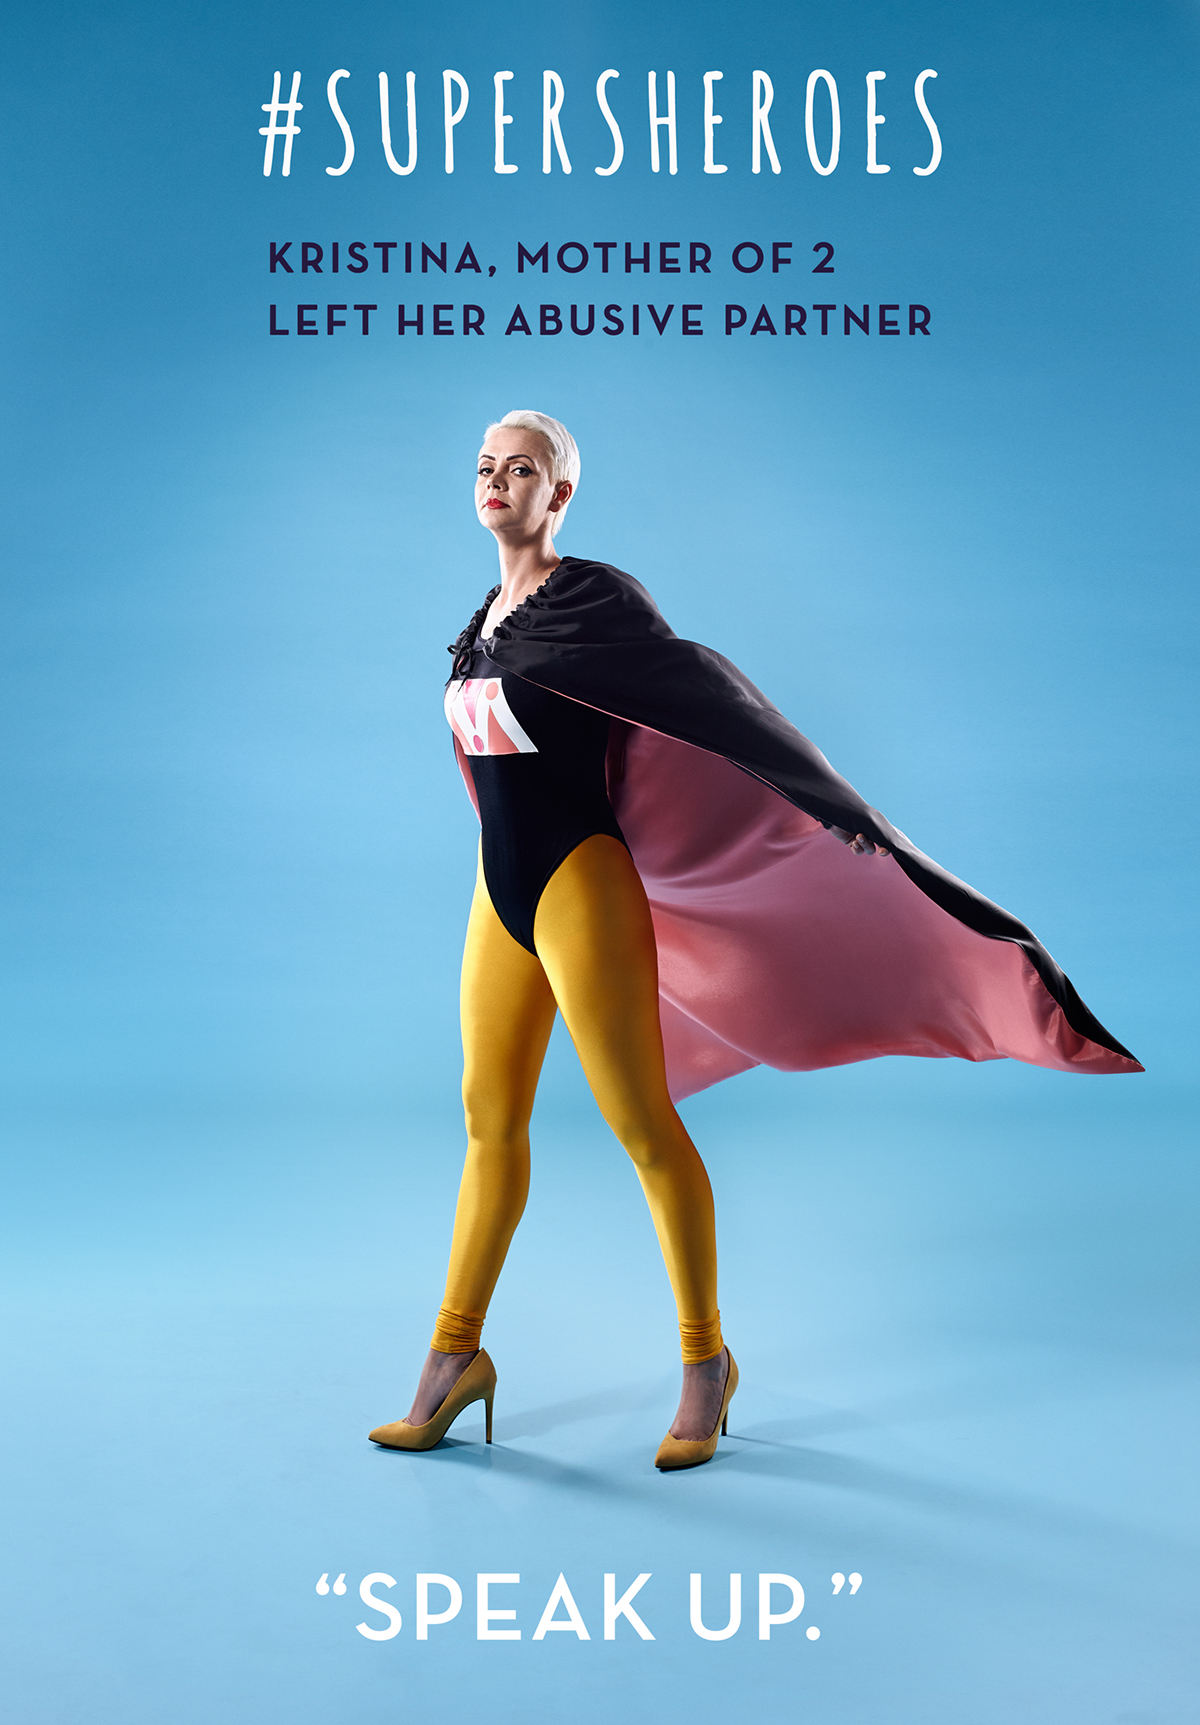 awareness,feminism,women,violence,abuse,supersheroes,power,Colourful